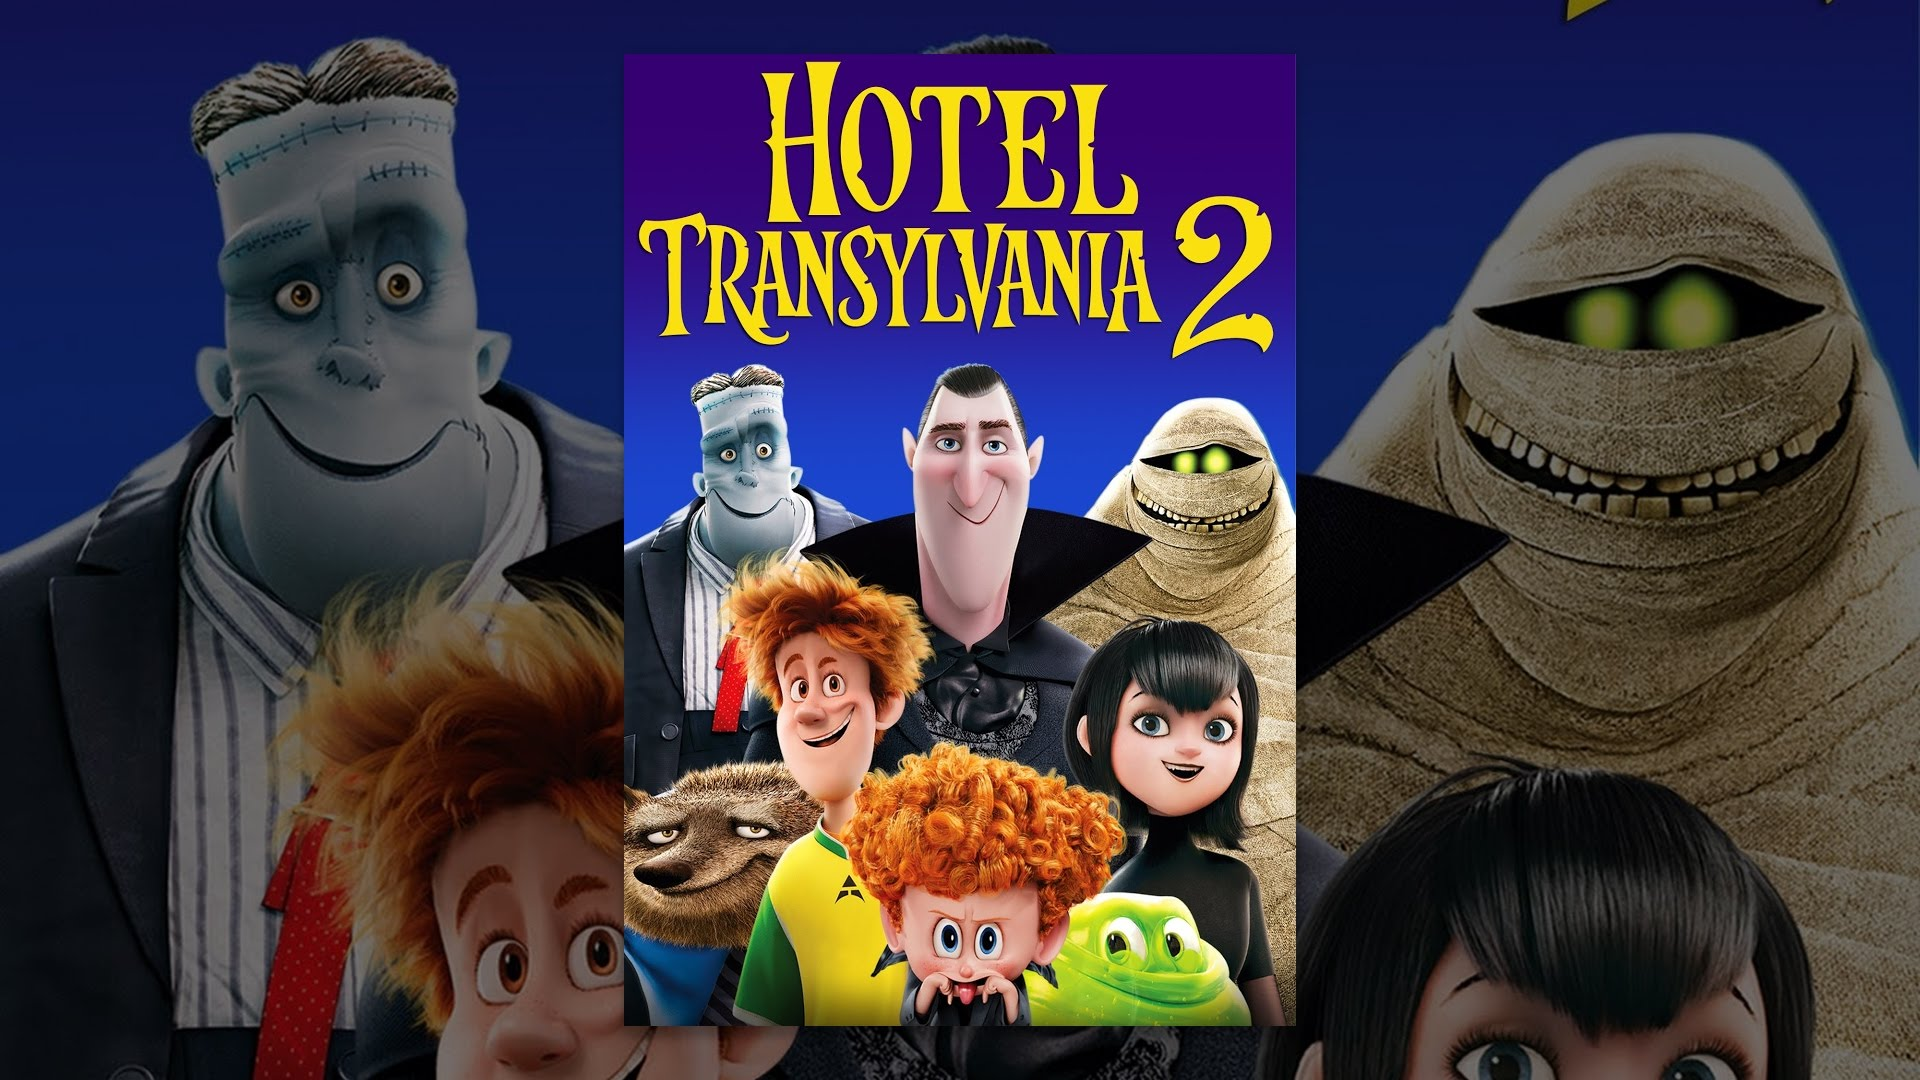 It's just an image of Hilaire Hotel Transylvania Pictures